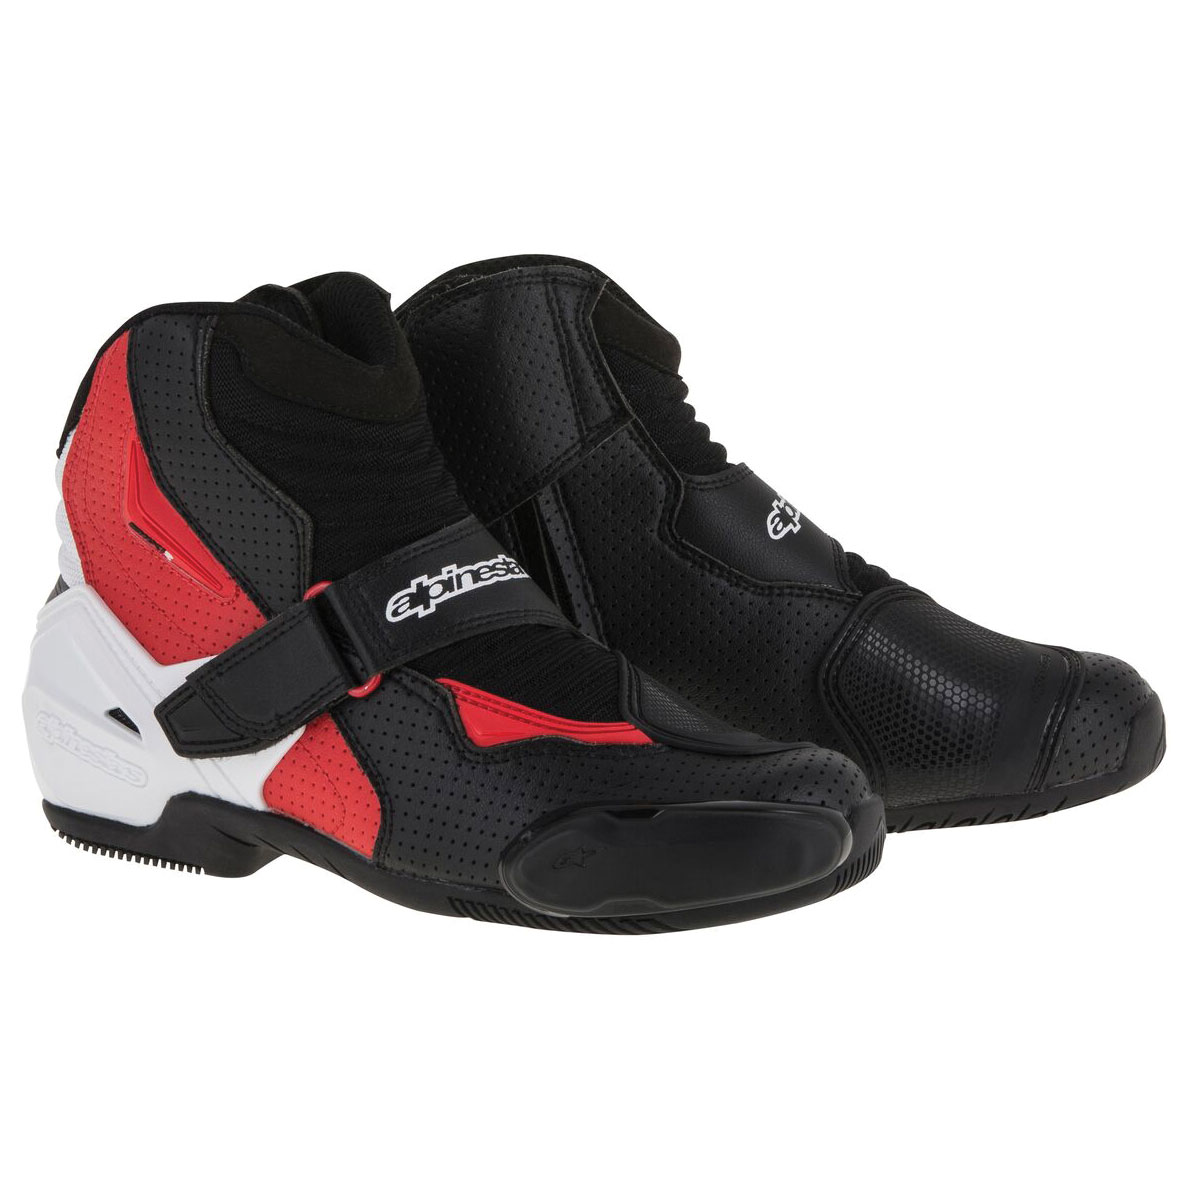 Alpinestars Men's SMX-1 R Vented Black/White/Red Boots